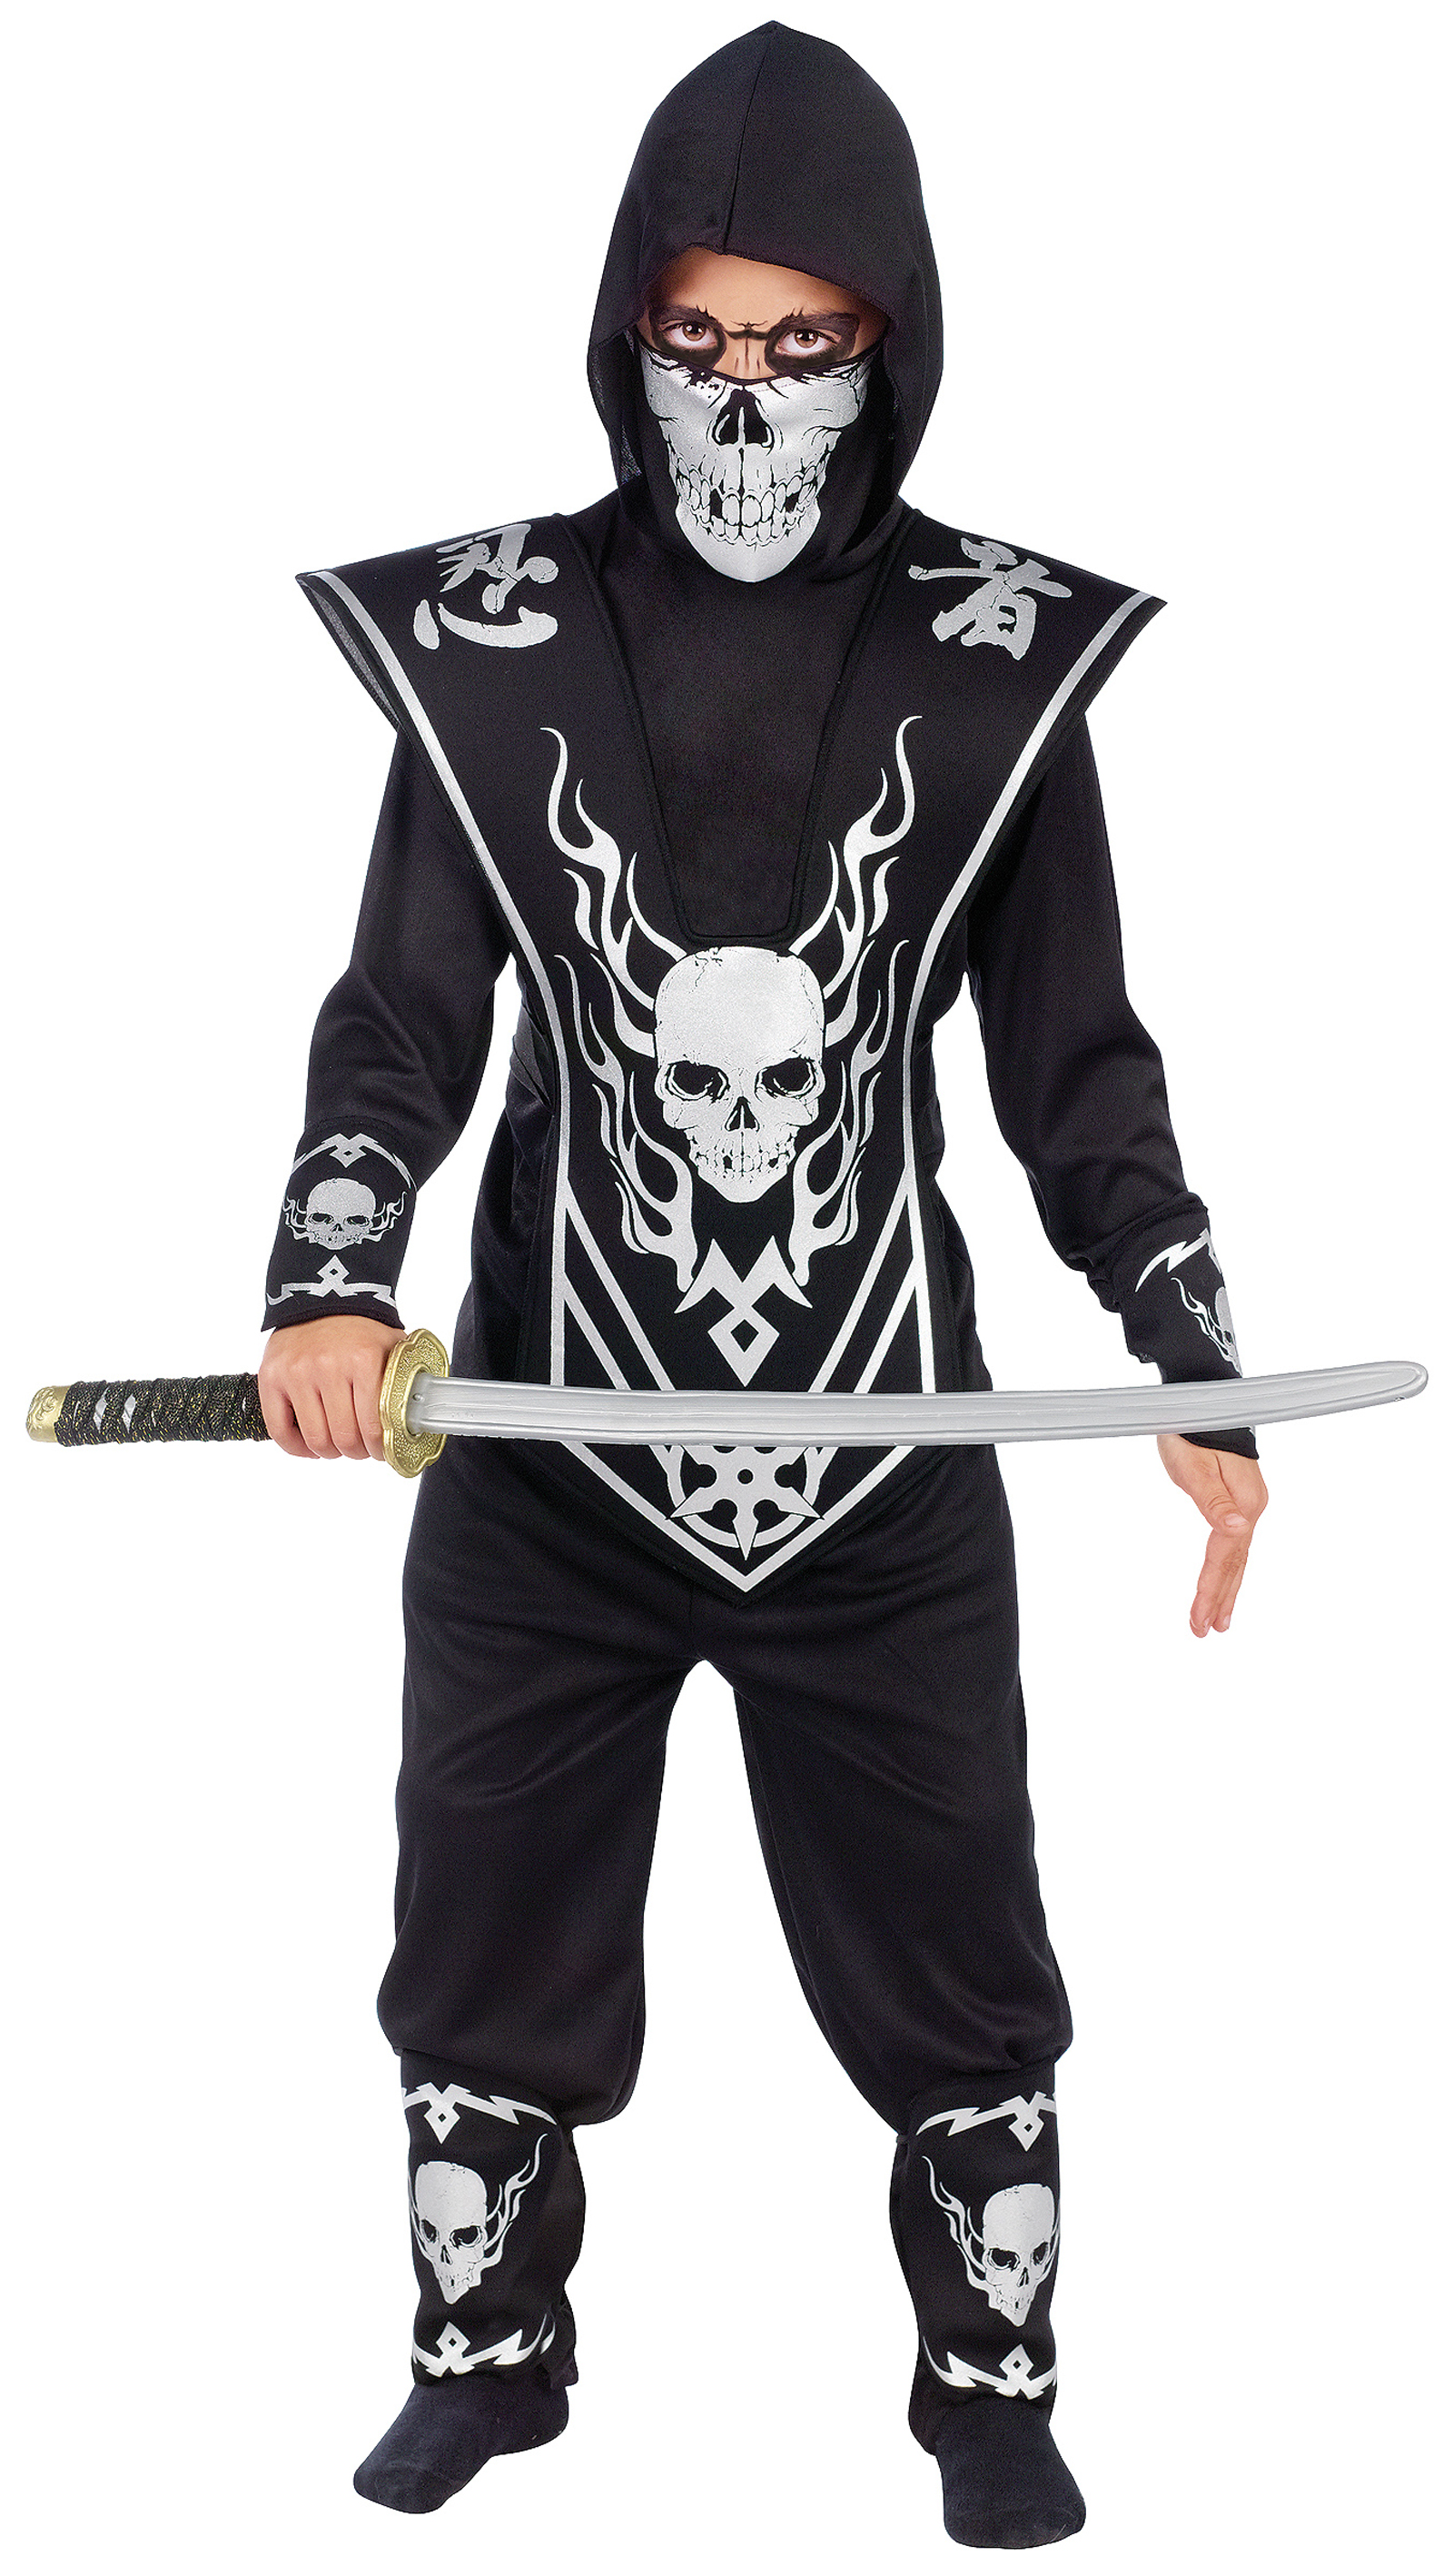 http://www.partybell.com/p-15155-skull-lord-ninja-child-costume.aspx